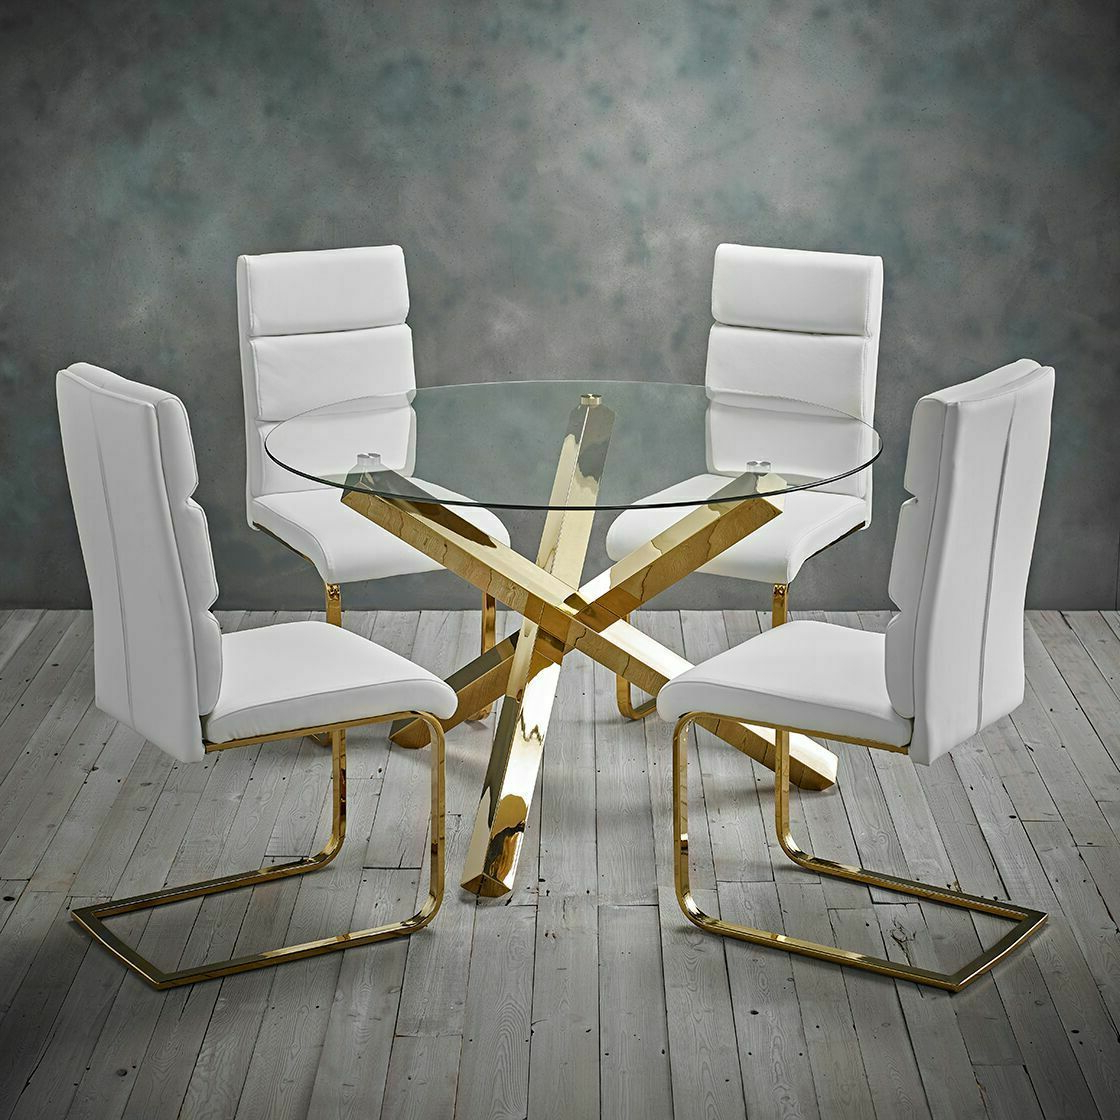 Modern Polished Gold Round Clear Glass Dining Table With Well Liked Modern Gold Dining Tables With Clear Glass (View 17 of 30)